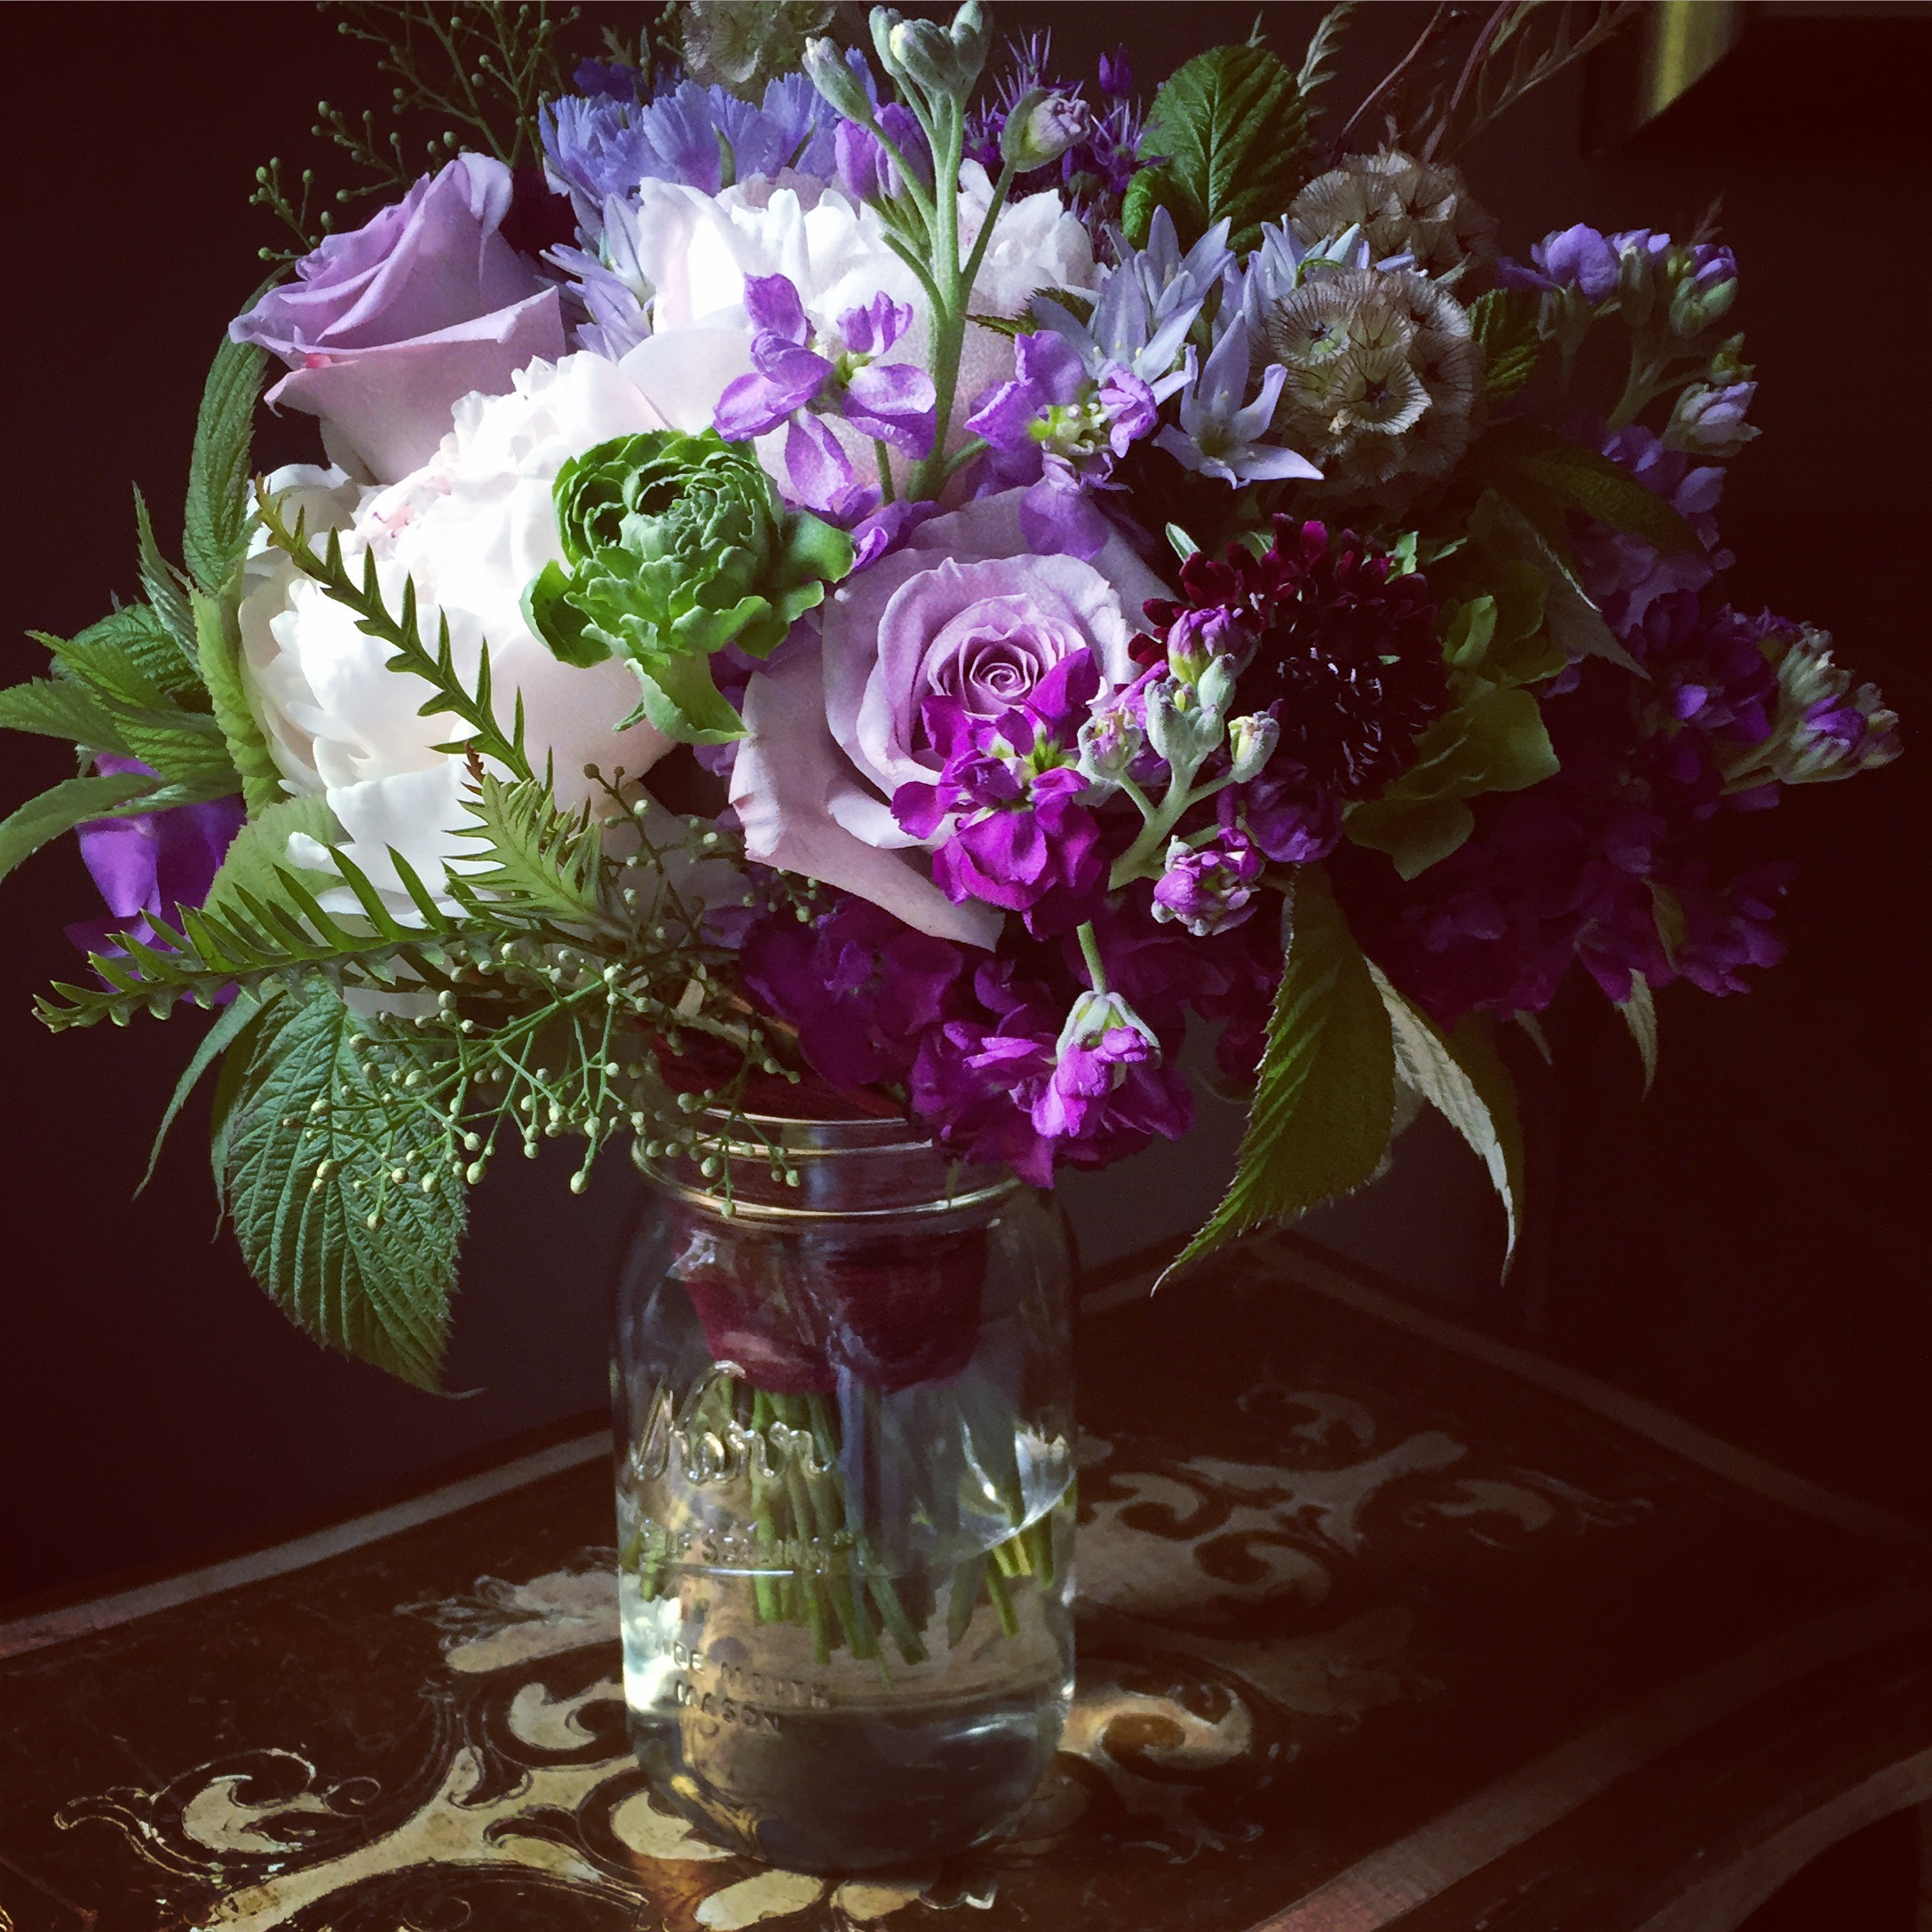 Bride's bouquet in purples with peonies and sweetpeas